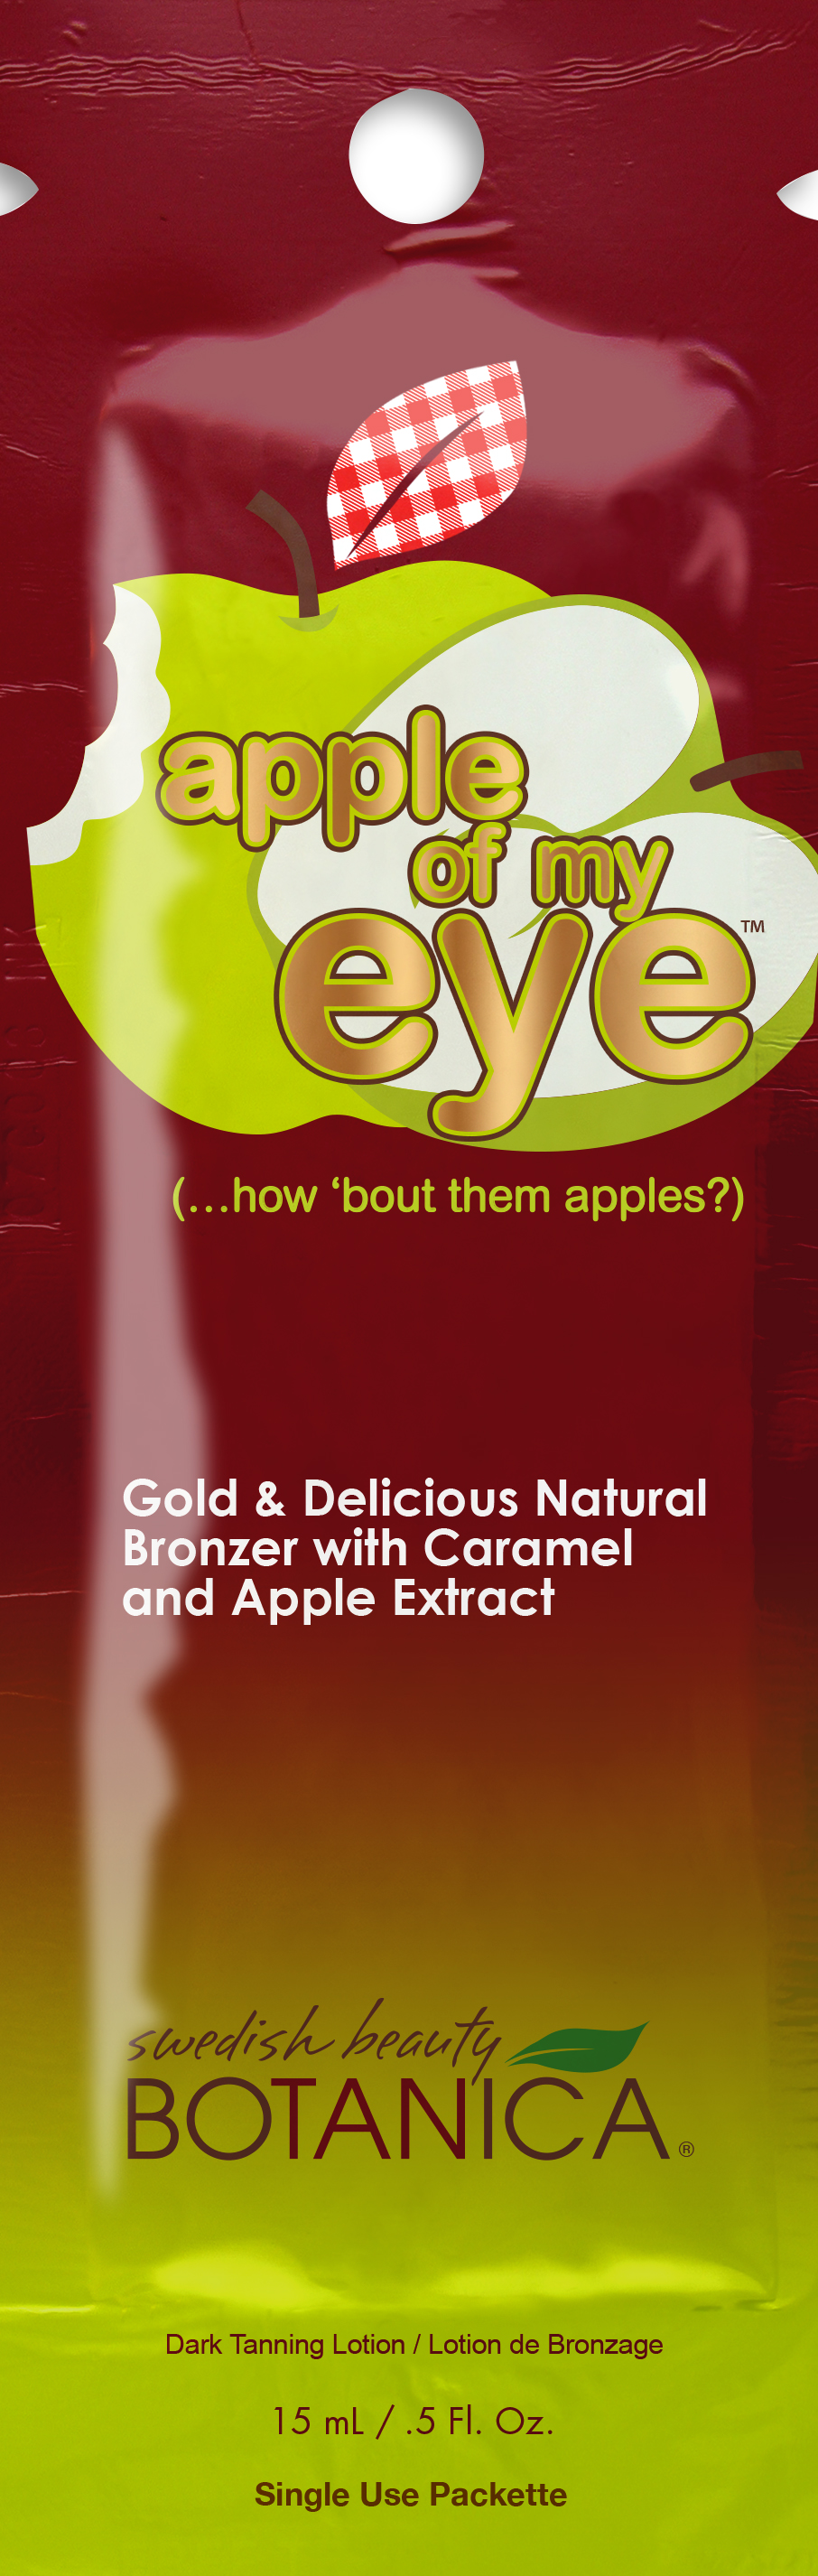 Apple of My Eye™ Gold & Delicious Natural Bronzer Pkt